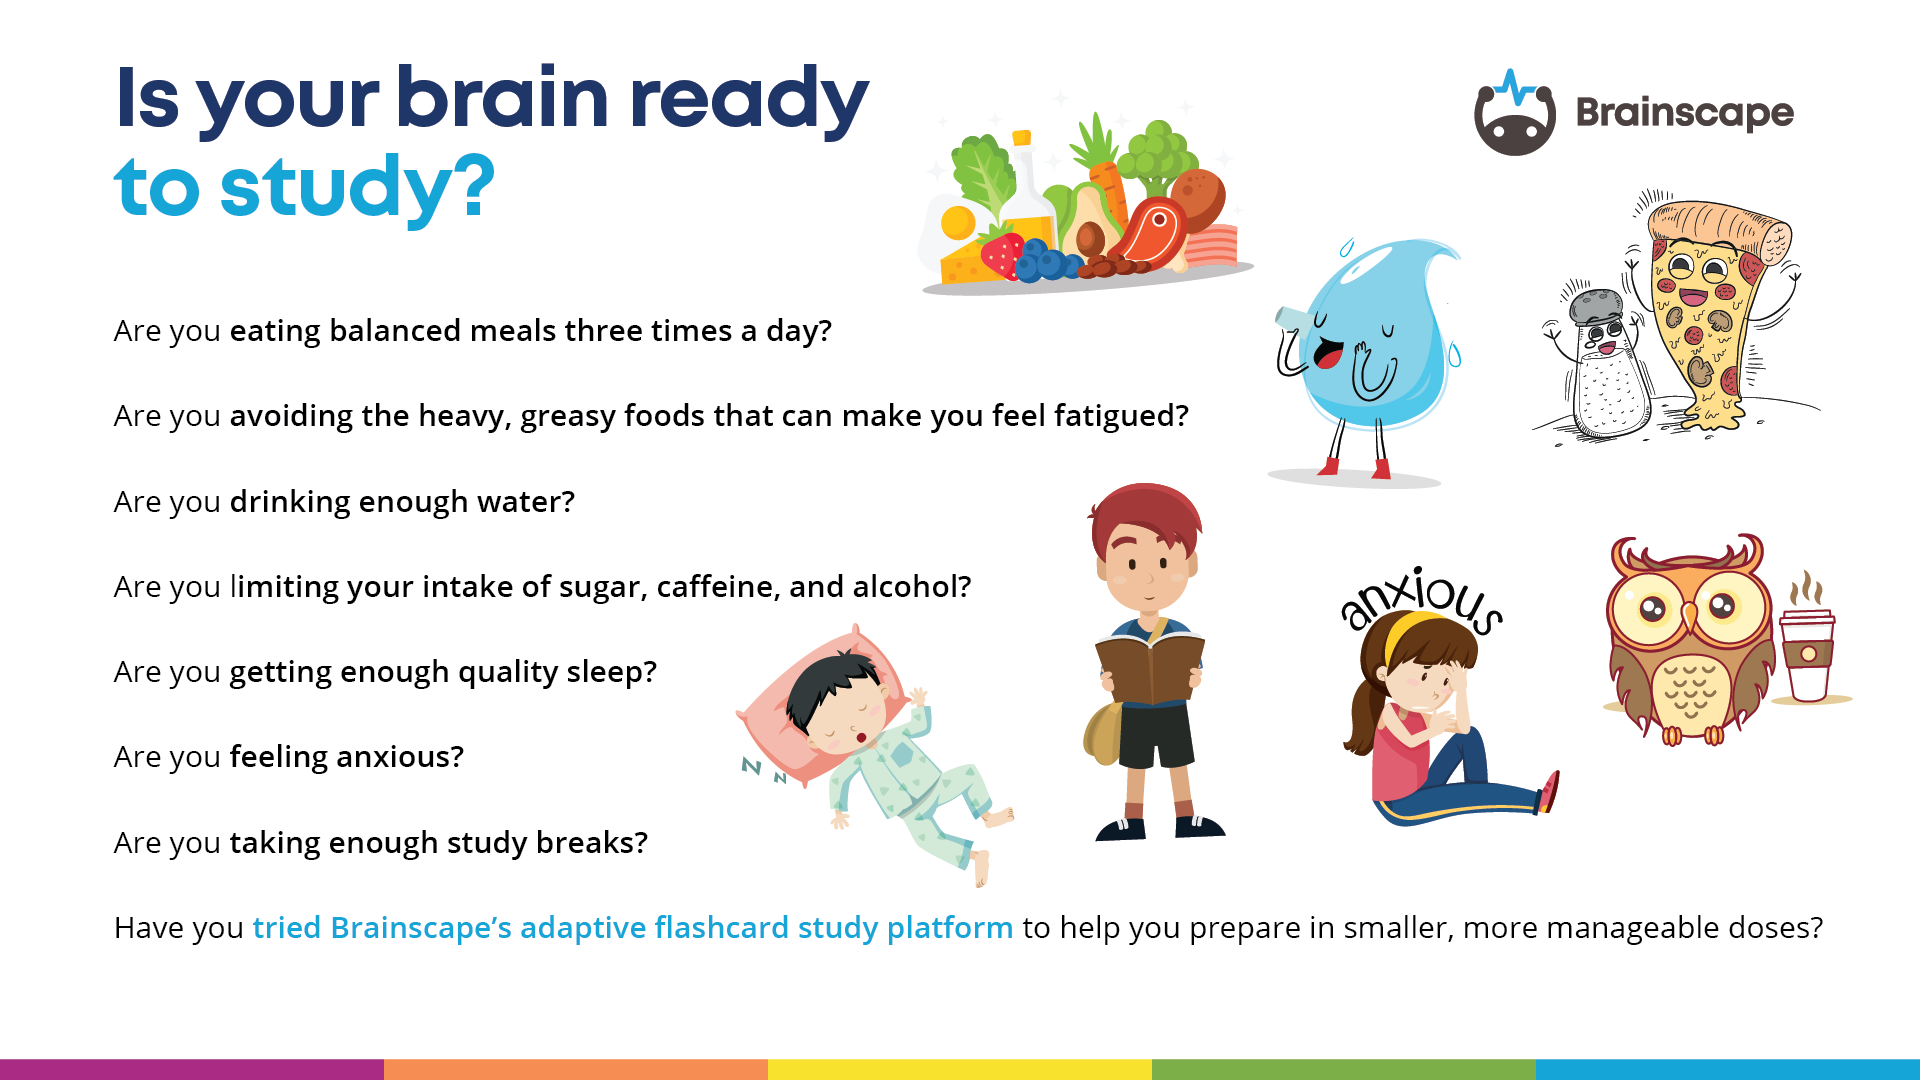 Tips on preparing your brain for study